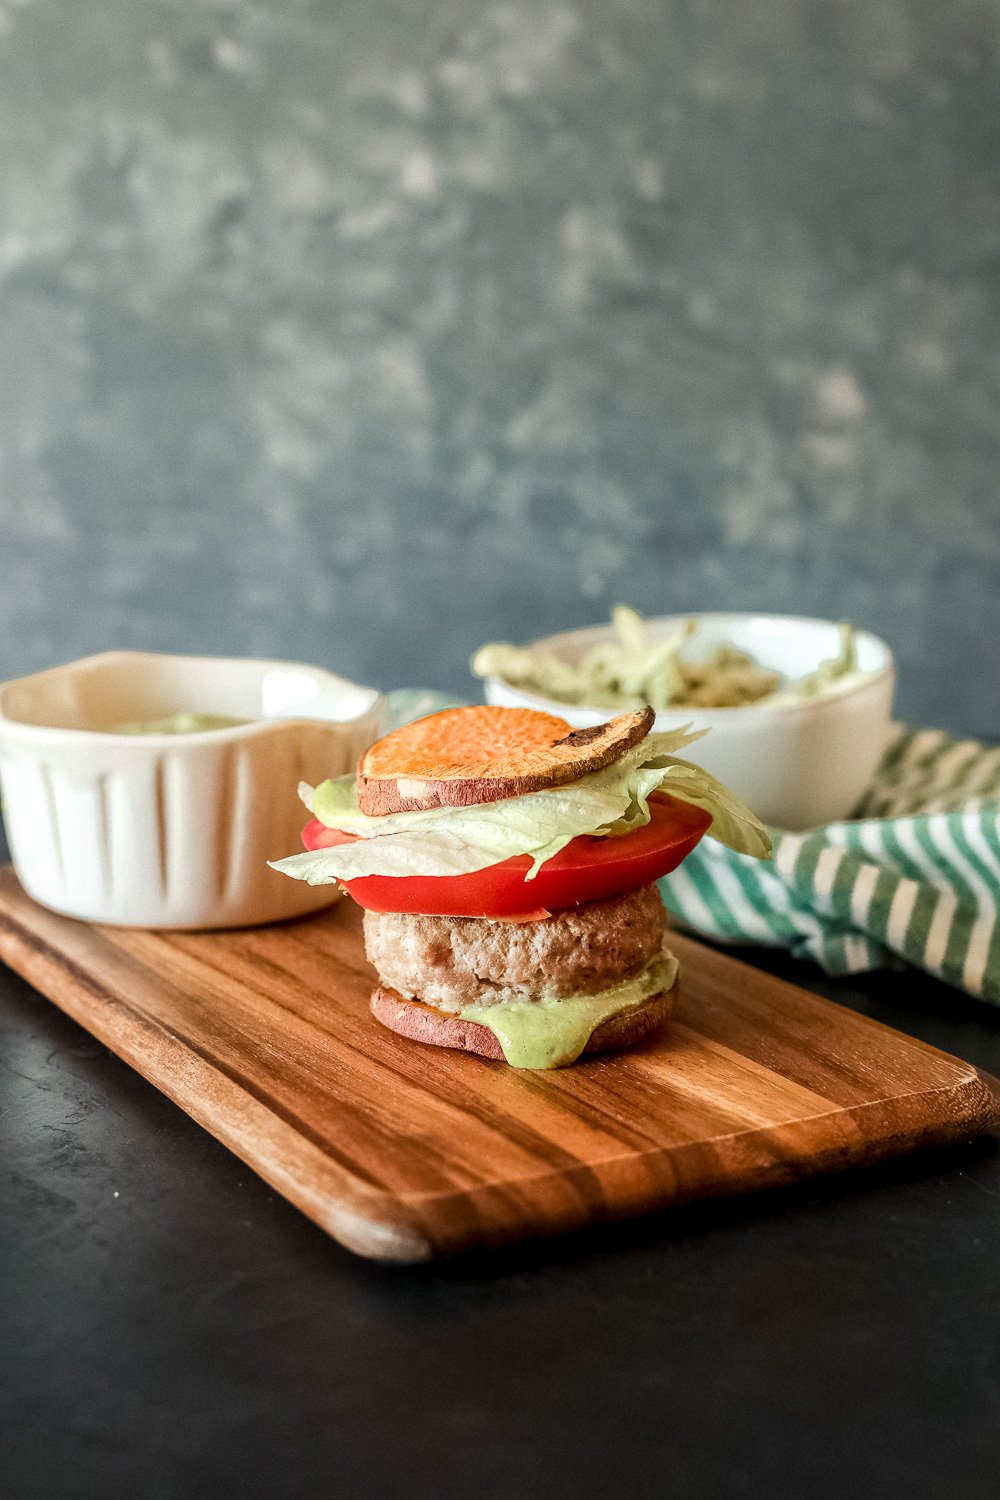 This Garlic Pesto Aioli is Whole30 compliant, simple to mix up in your blender and great on burgers, sandwiches and chicken salad!